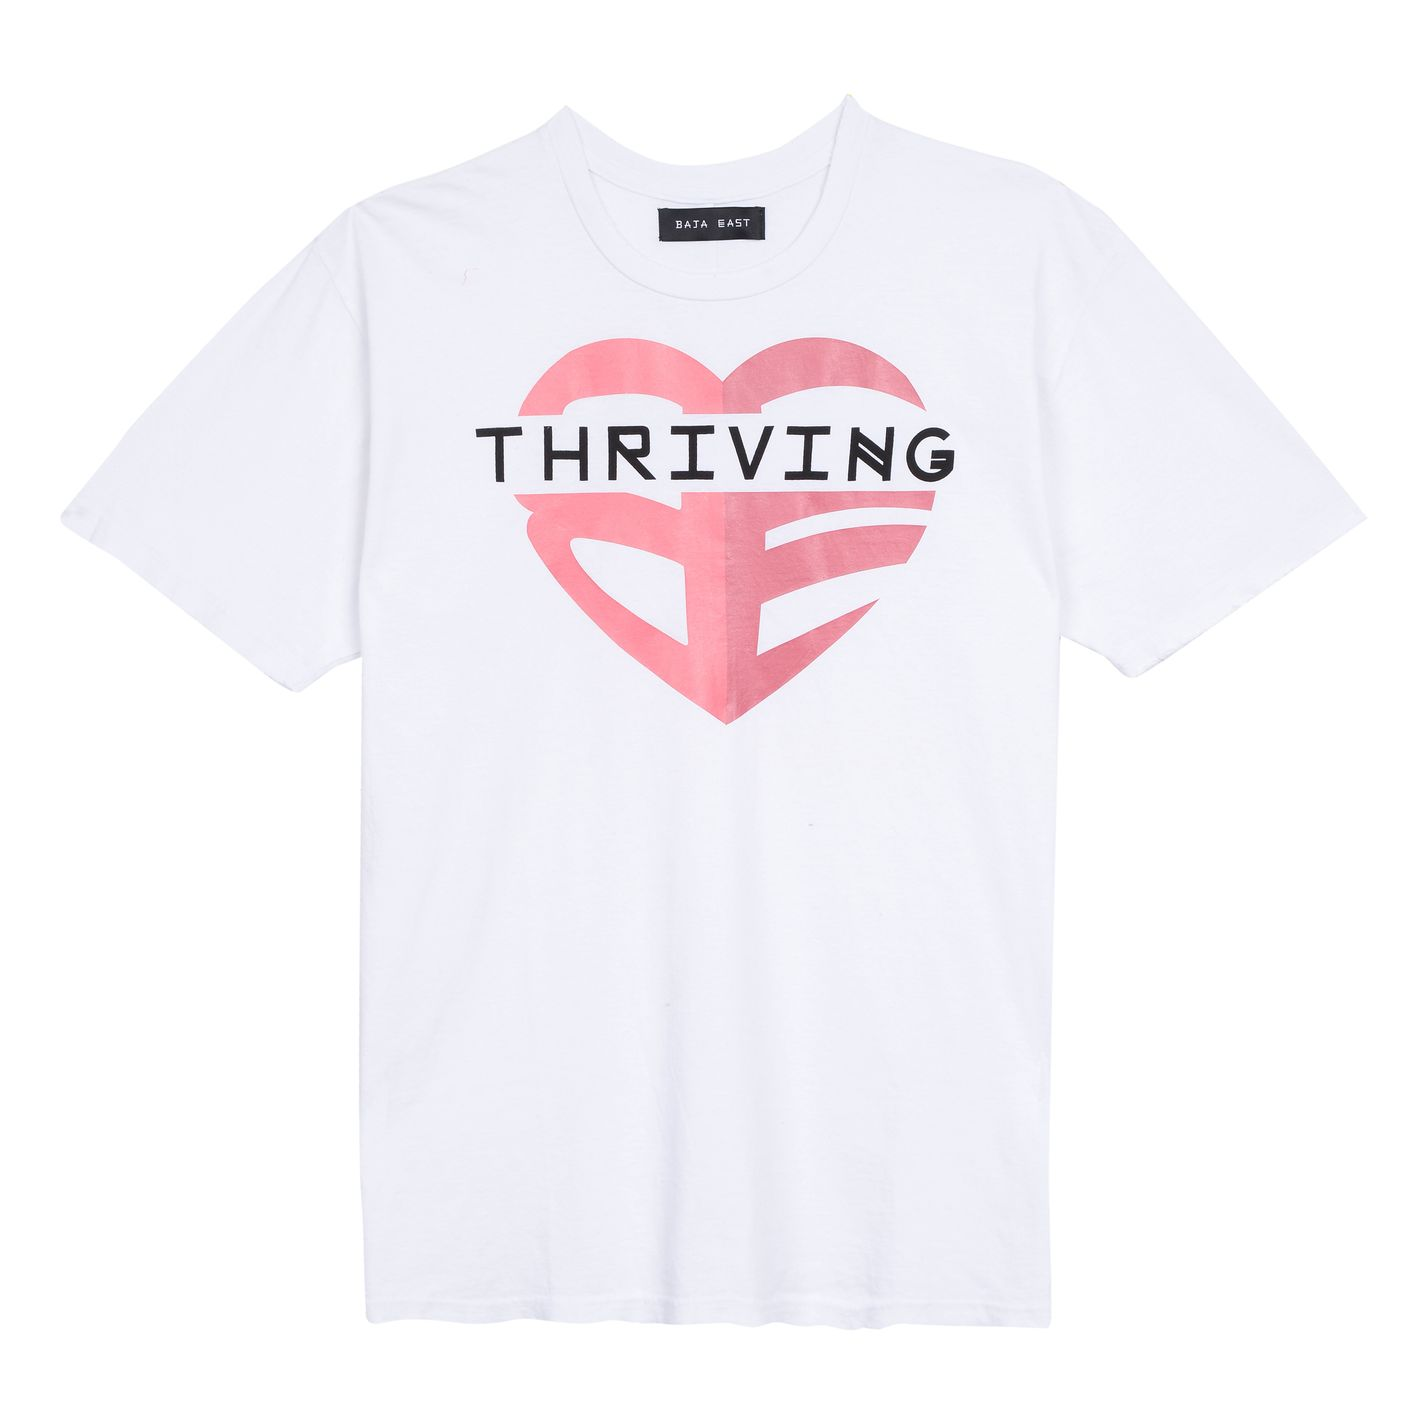 Baja East Thriving with Love T-Shirt